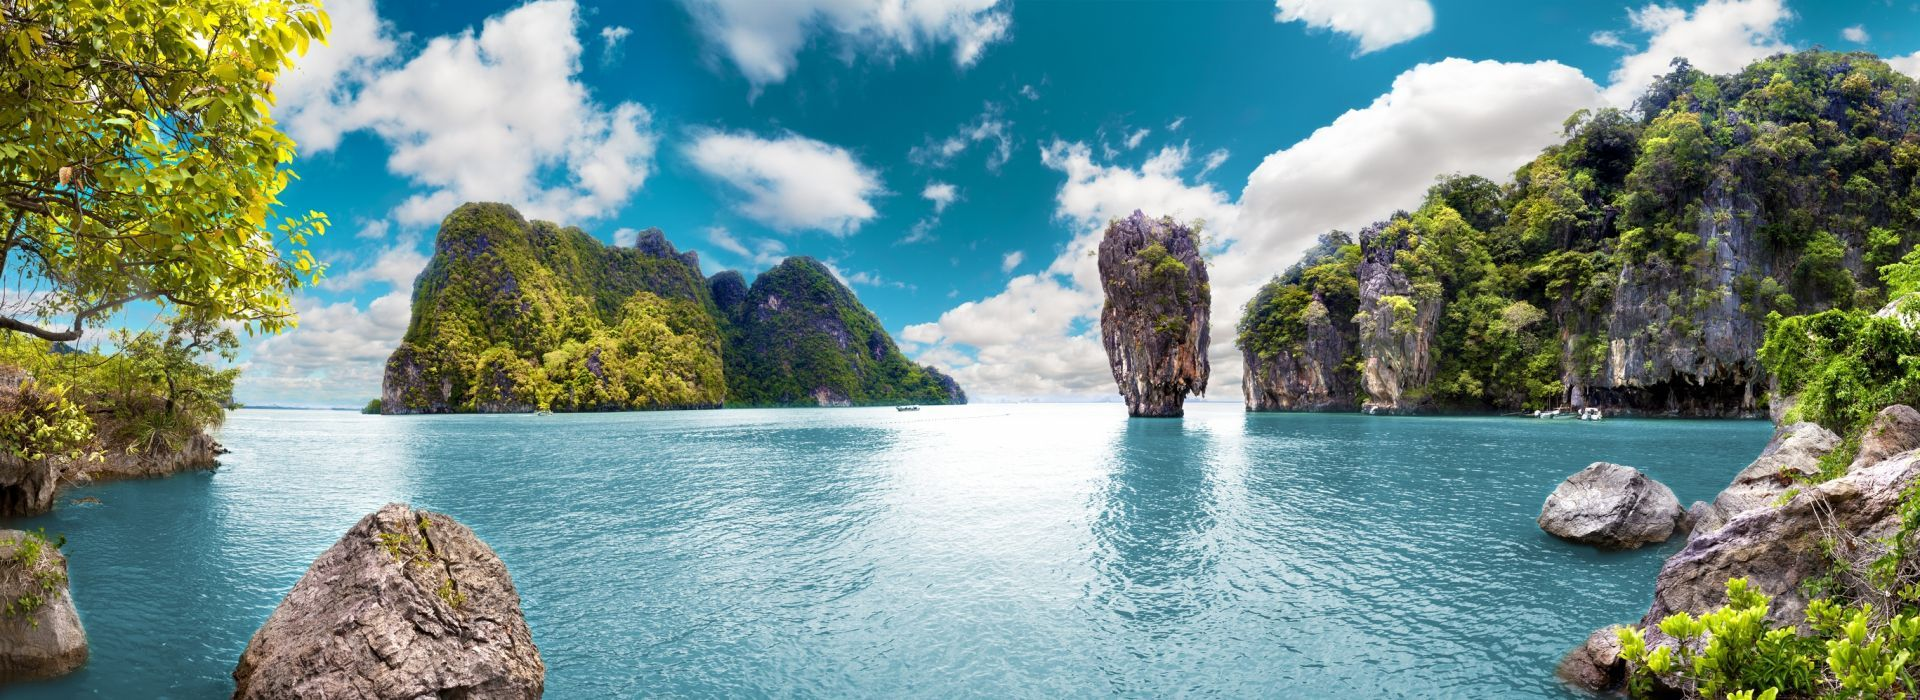 National parks Tours in Thailand